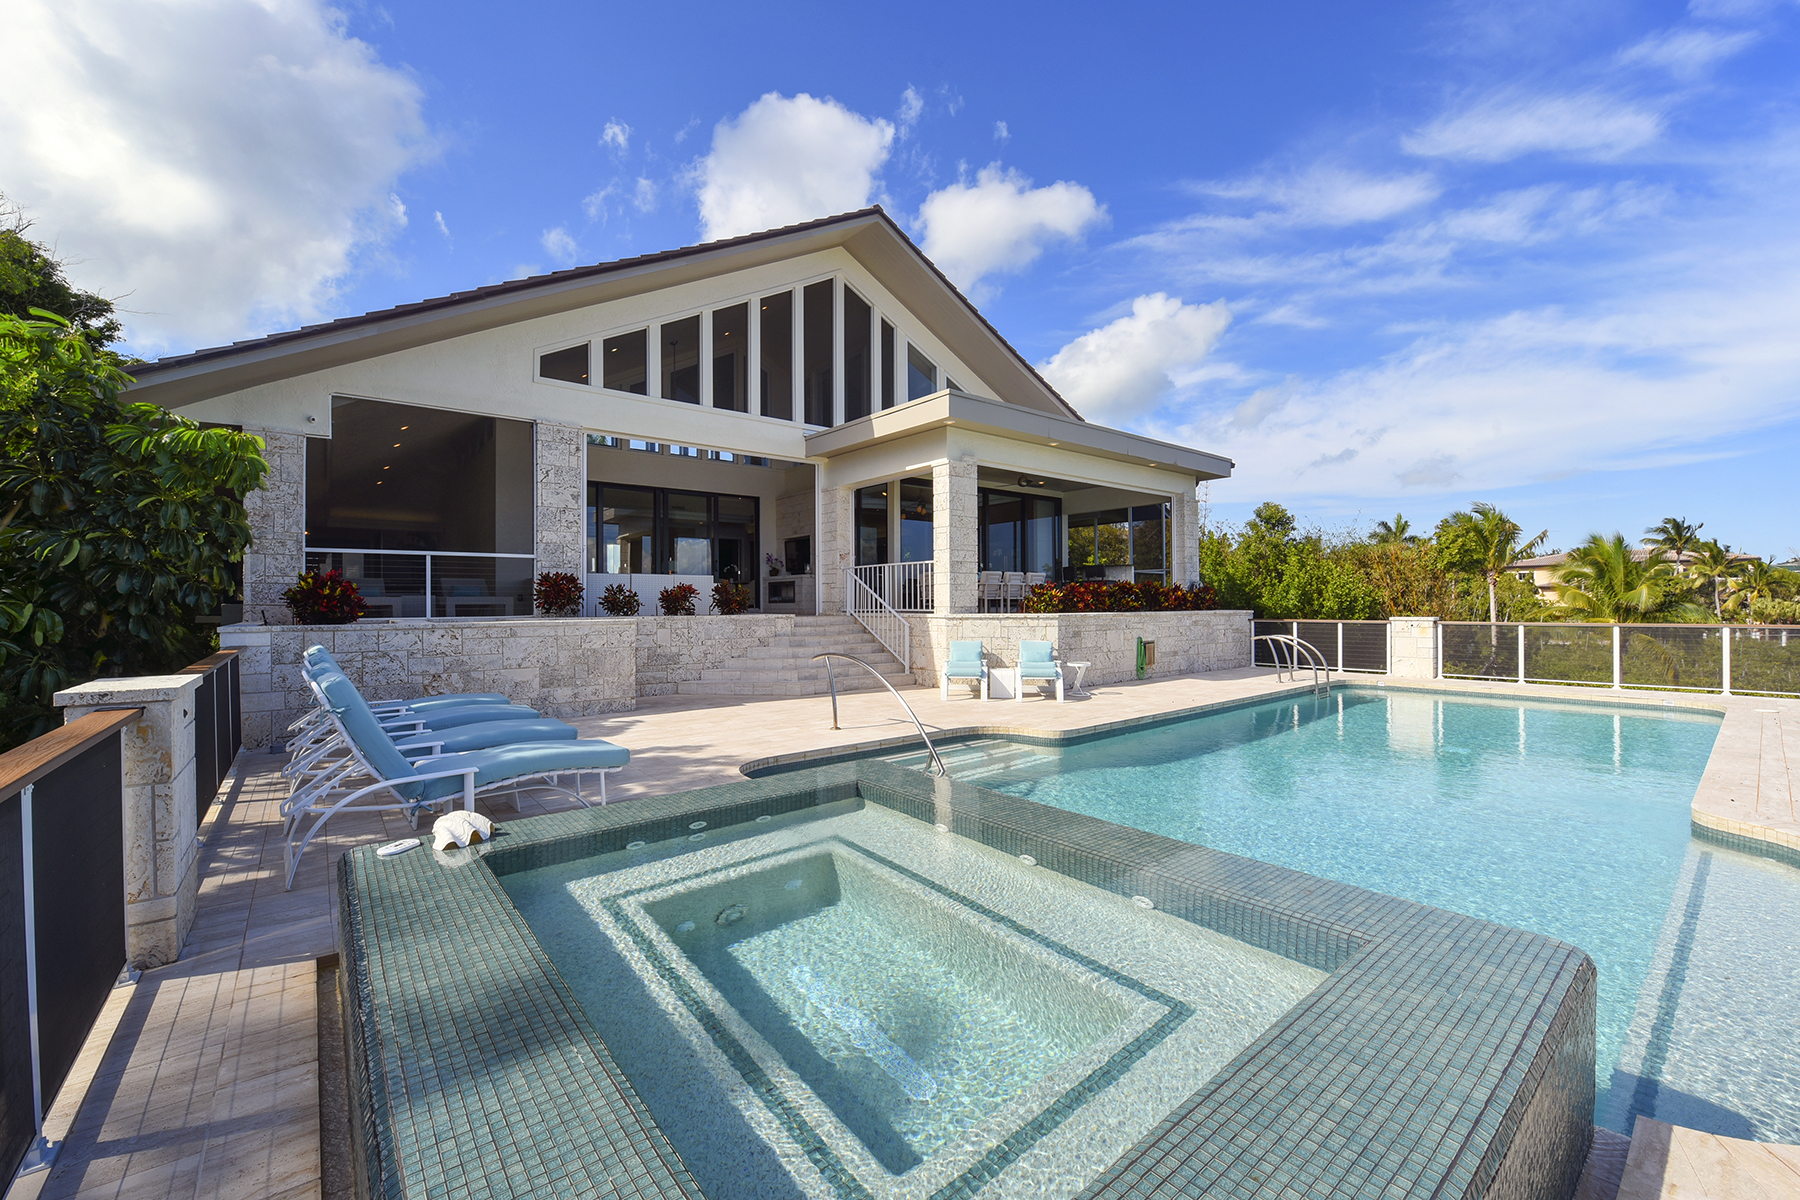 Single Family Homes for Sale at 11 Sunrise Cay Drive, Key Largo, FL 11 Sunrise Cay Drive Key Largo, Florida 33037 United States